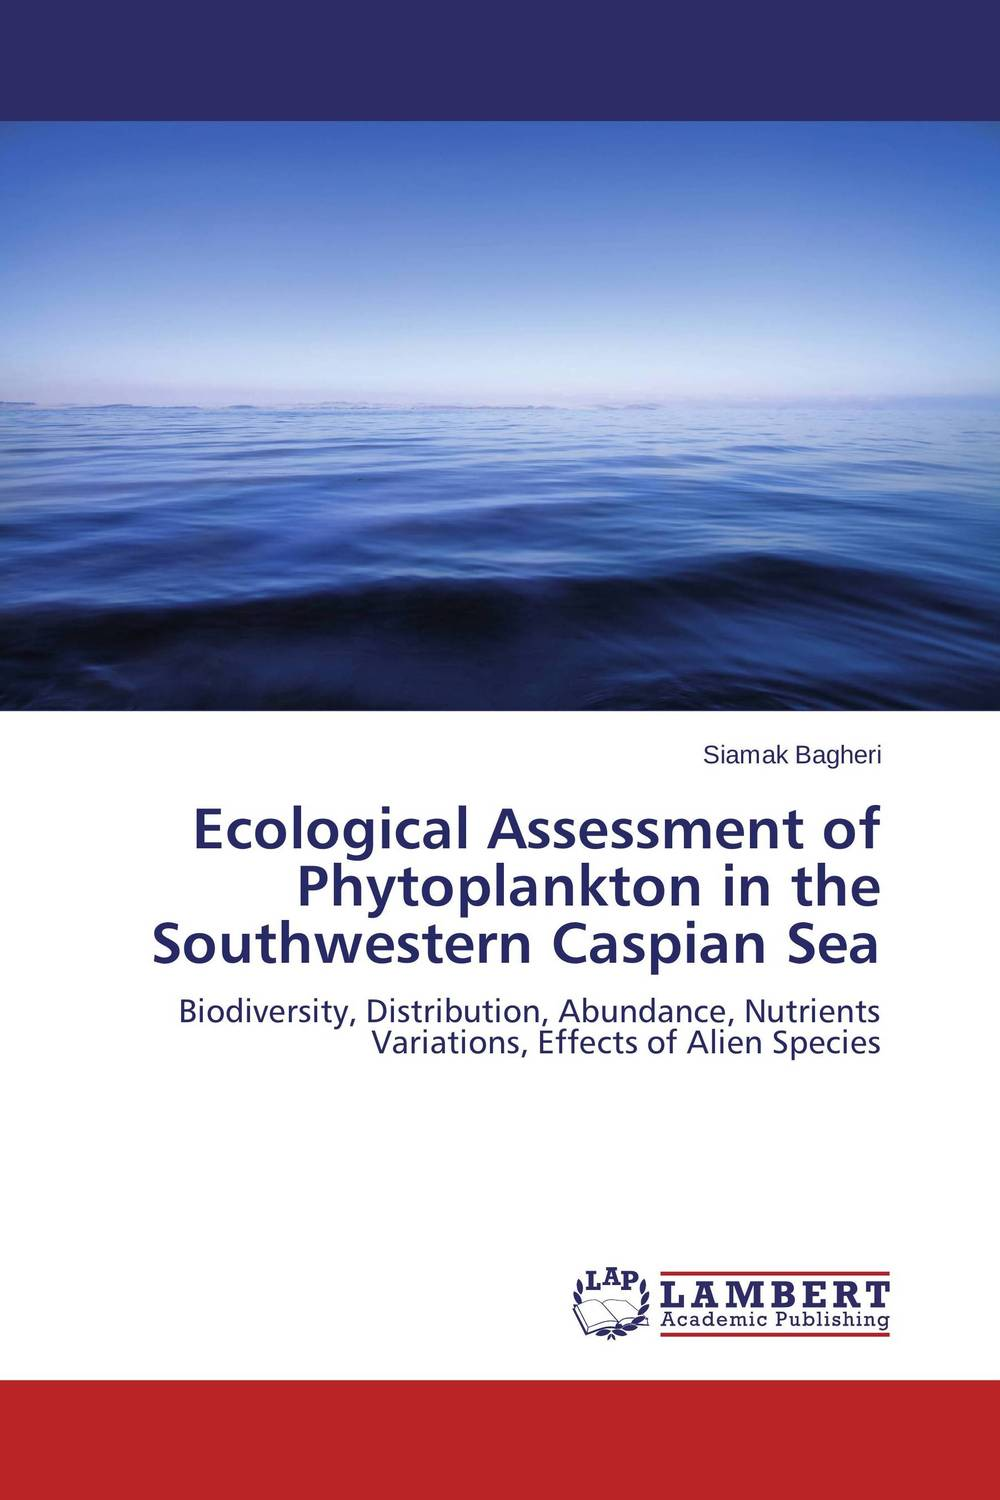 Ecological Assessment of Phytoplankton in the Southwestern Caspian Sea sea of spa крем морковный универсальный 500 мл